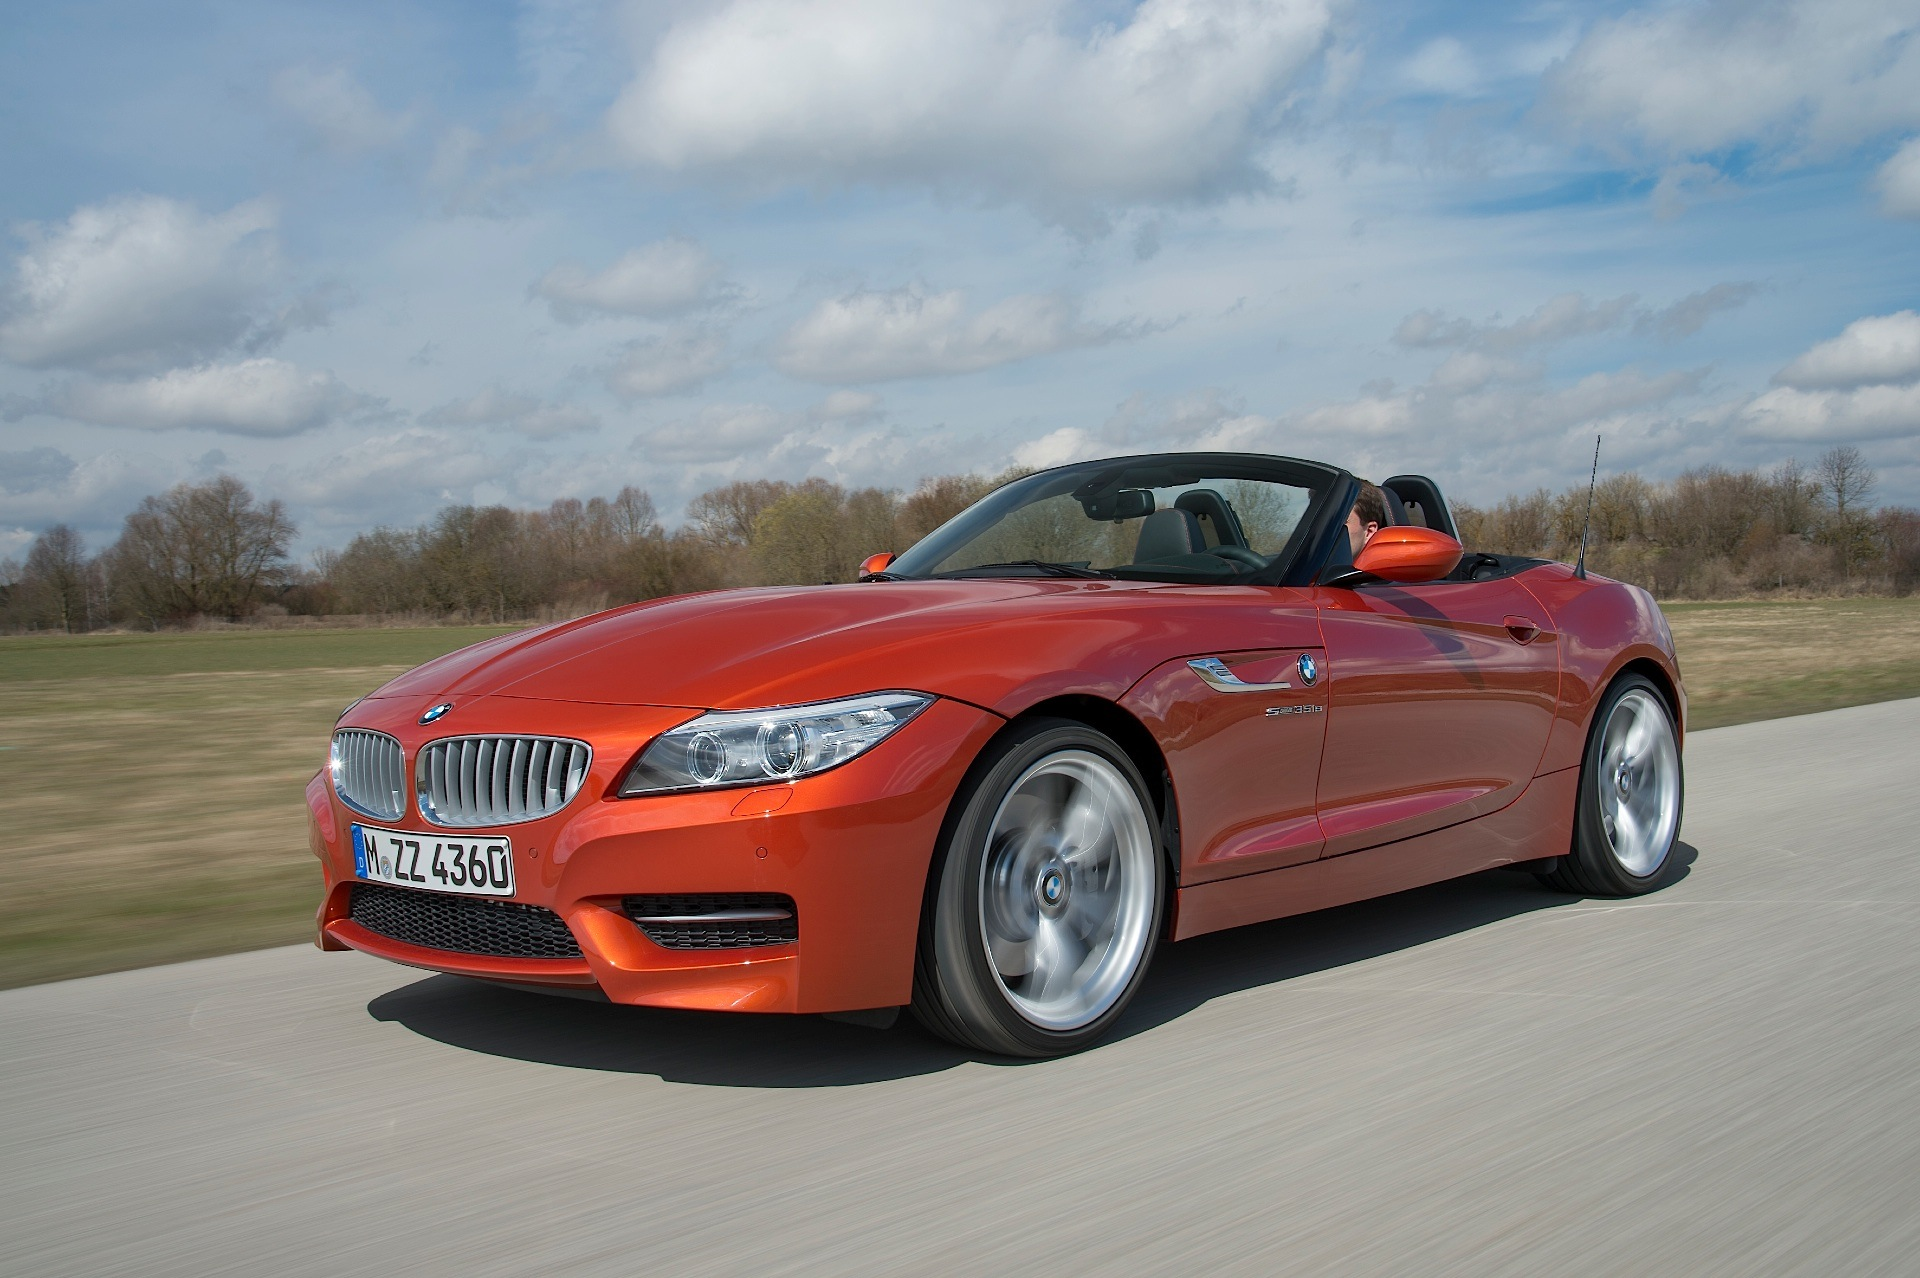 Prices For 2016 Bmw Z4 Roadster Remain Unchanged